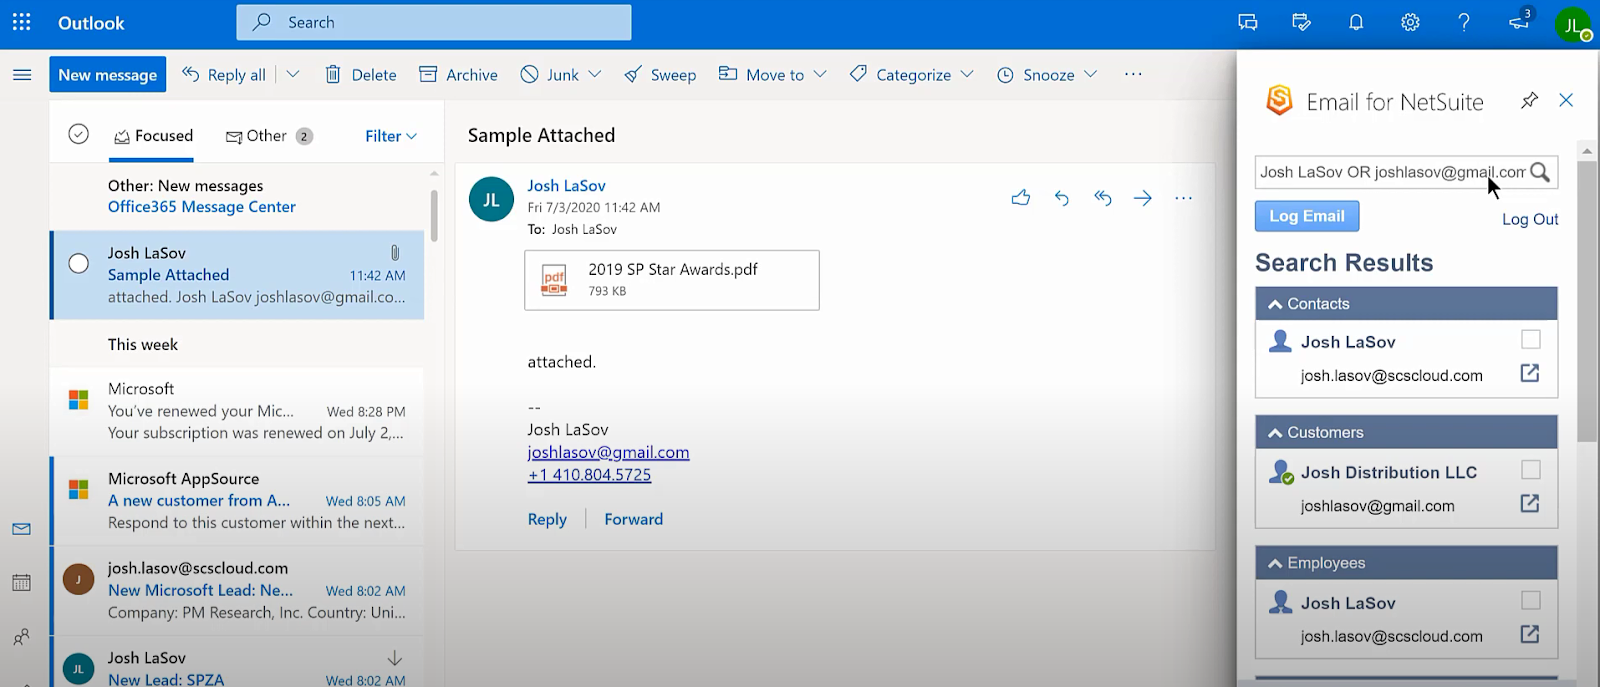 Email in Outlook showing the Email for NetSuite pop up on the right side of the screen that allows you to log emails directly to NetSuite.